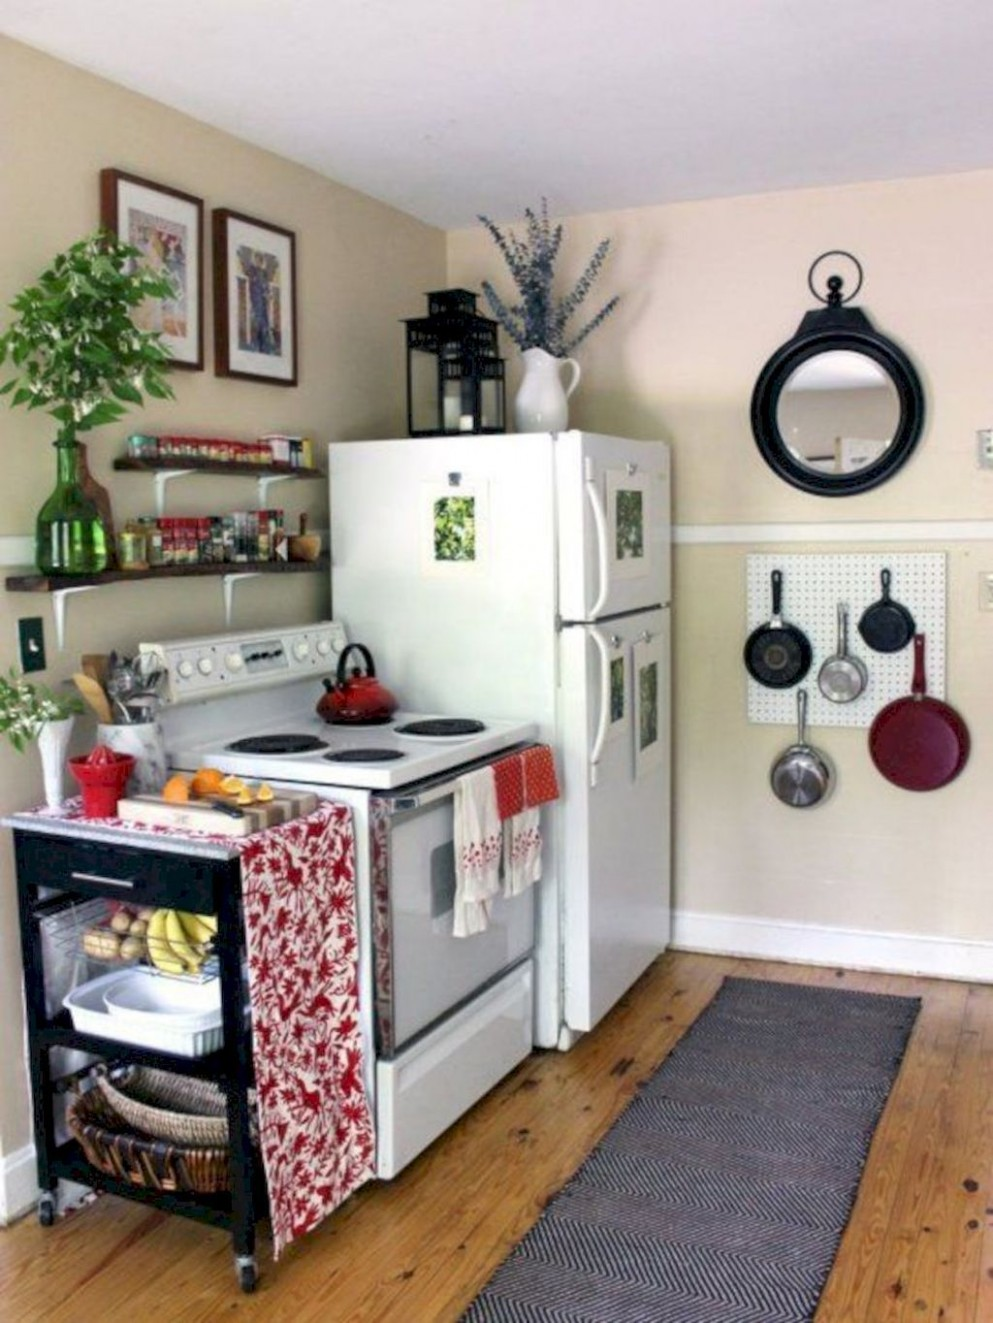 Diy First Apartment Decoration Ideas - savillefurniture  Kitchen  - Apartment Kitchen Decor Ideas